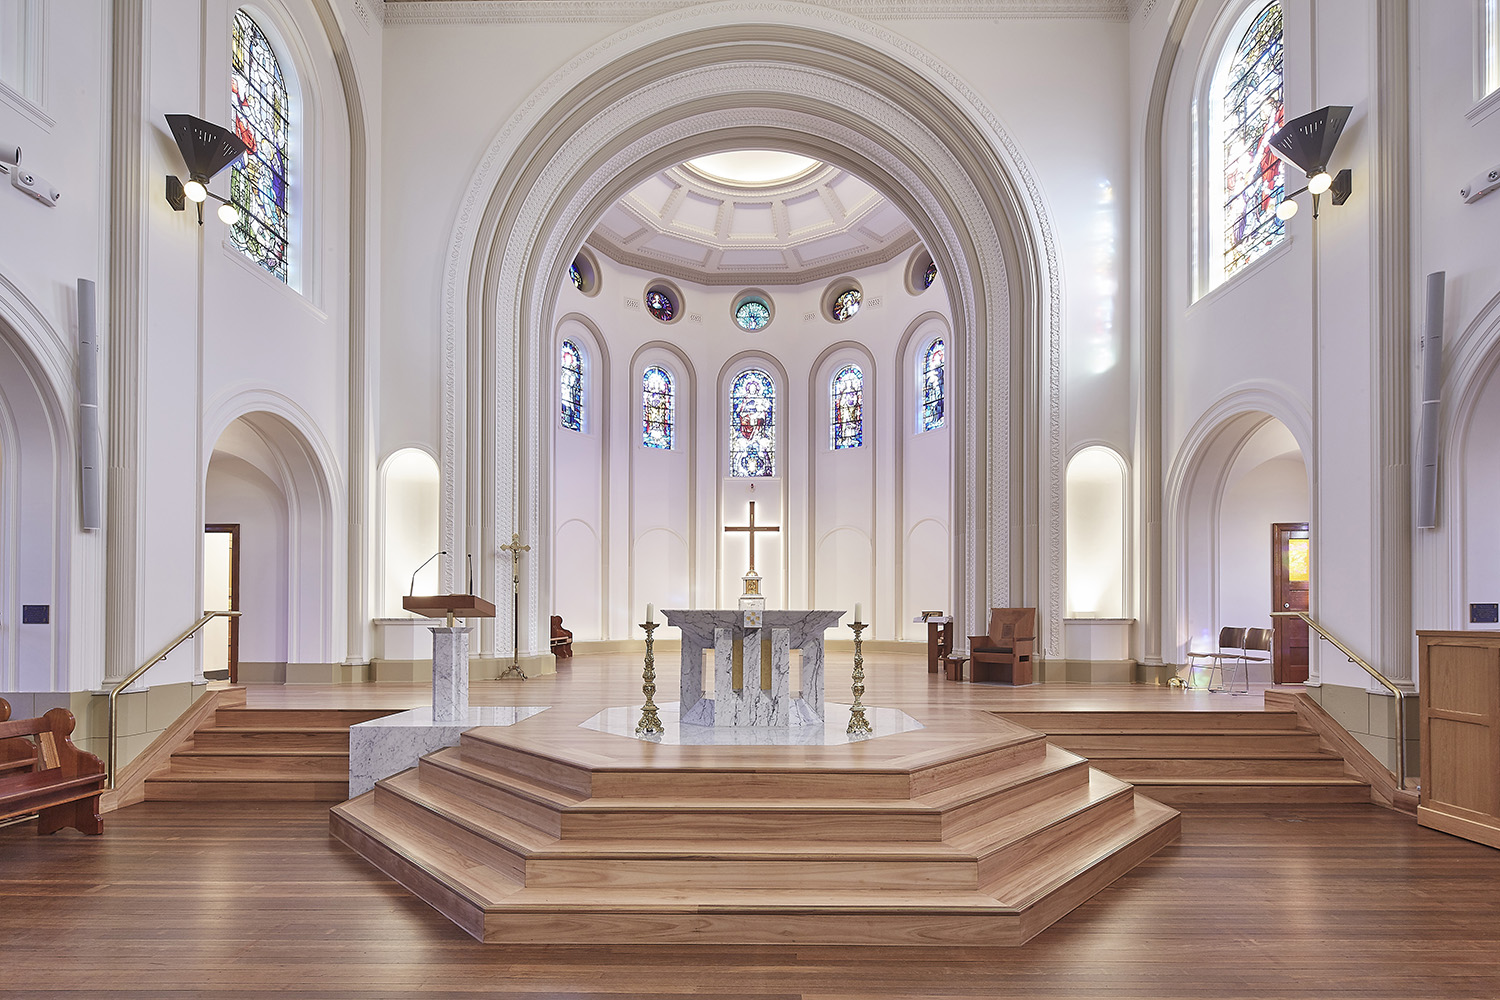 St Josephs College Chapel Architectural Refurbishment Stage Area Interior Design – Gardner Wetherill GW 2